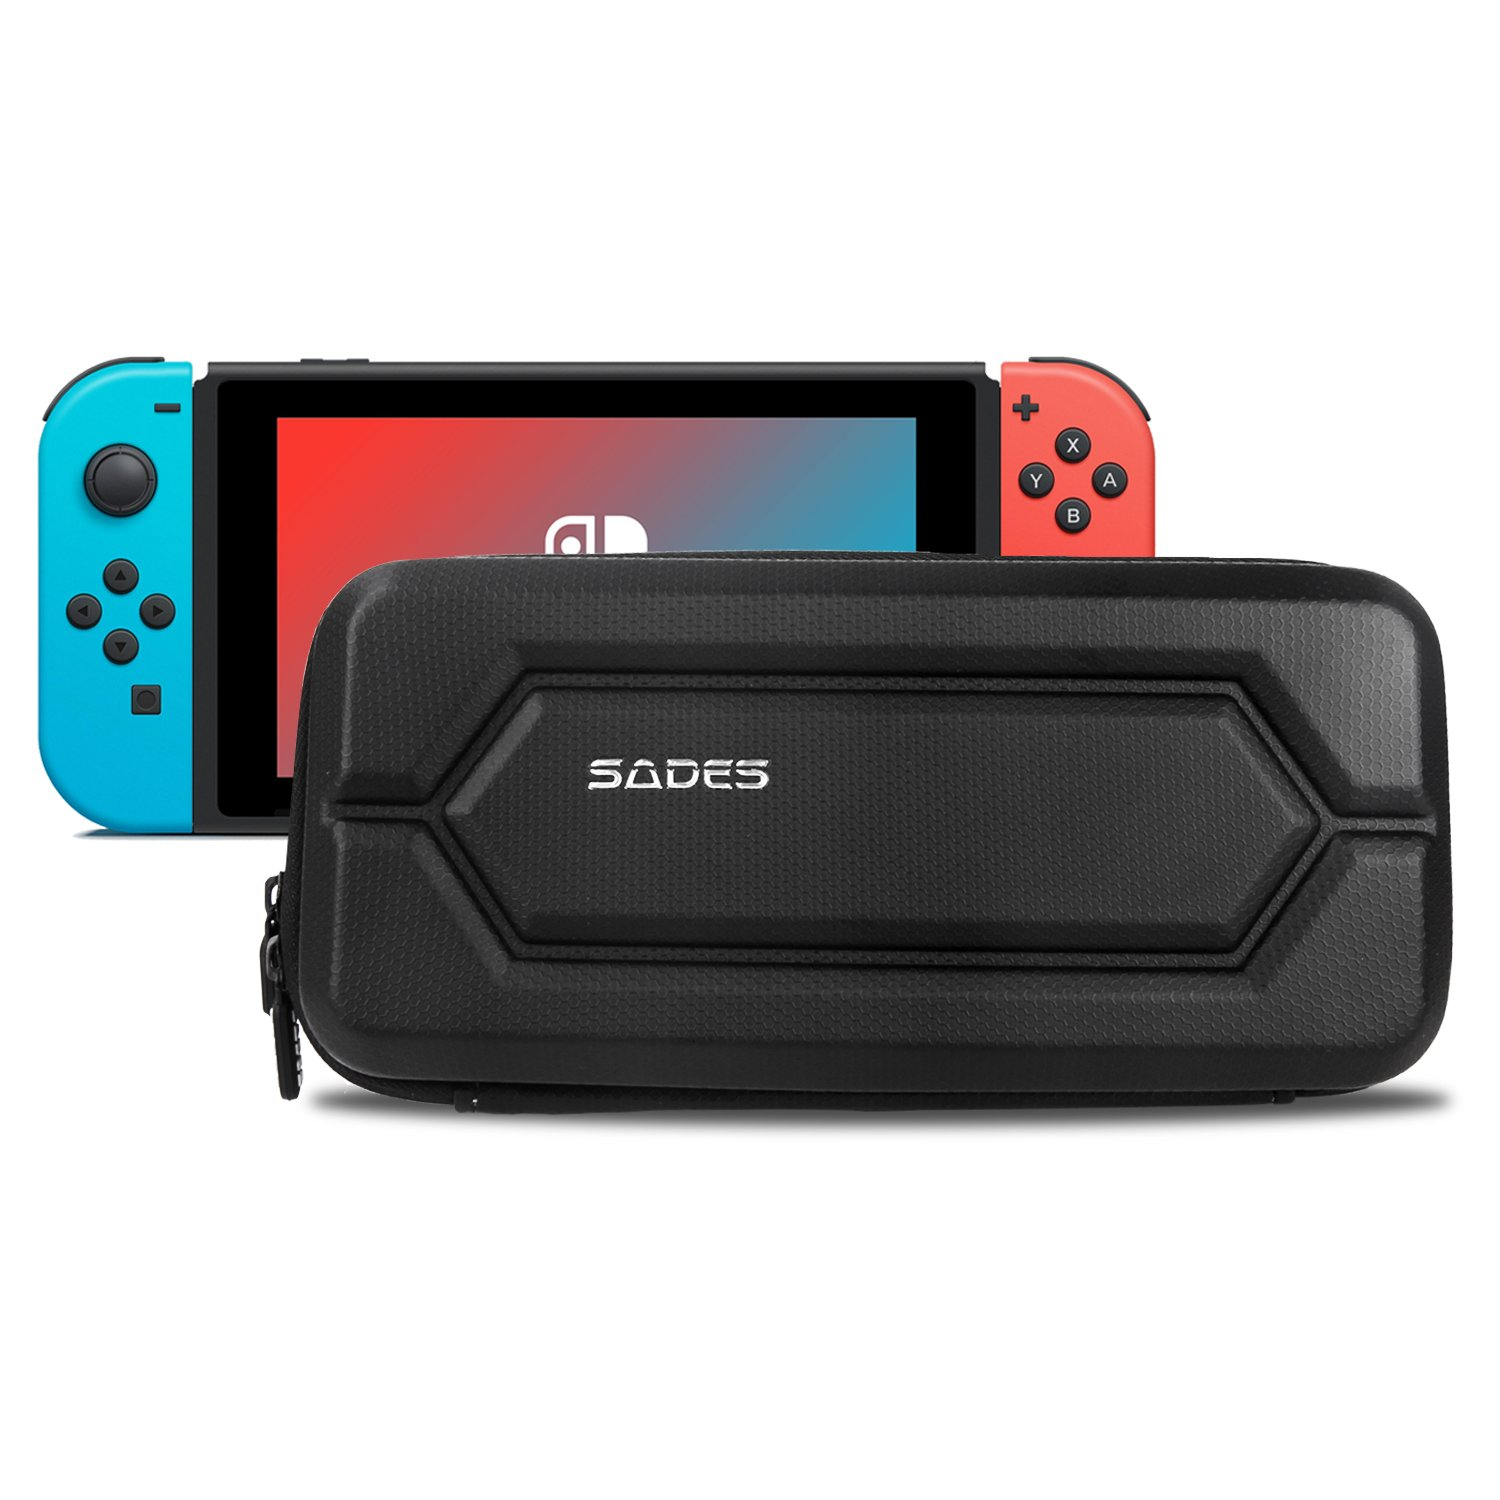 SADES Nintendo Switch Carrying Case Protective Carrying bag for Nintendo Switch Games Console and Accessories